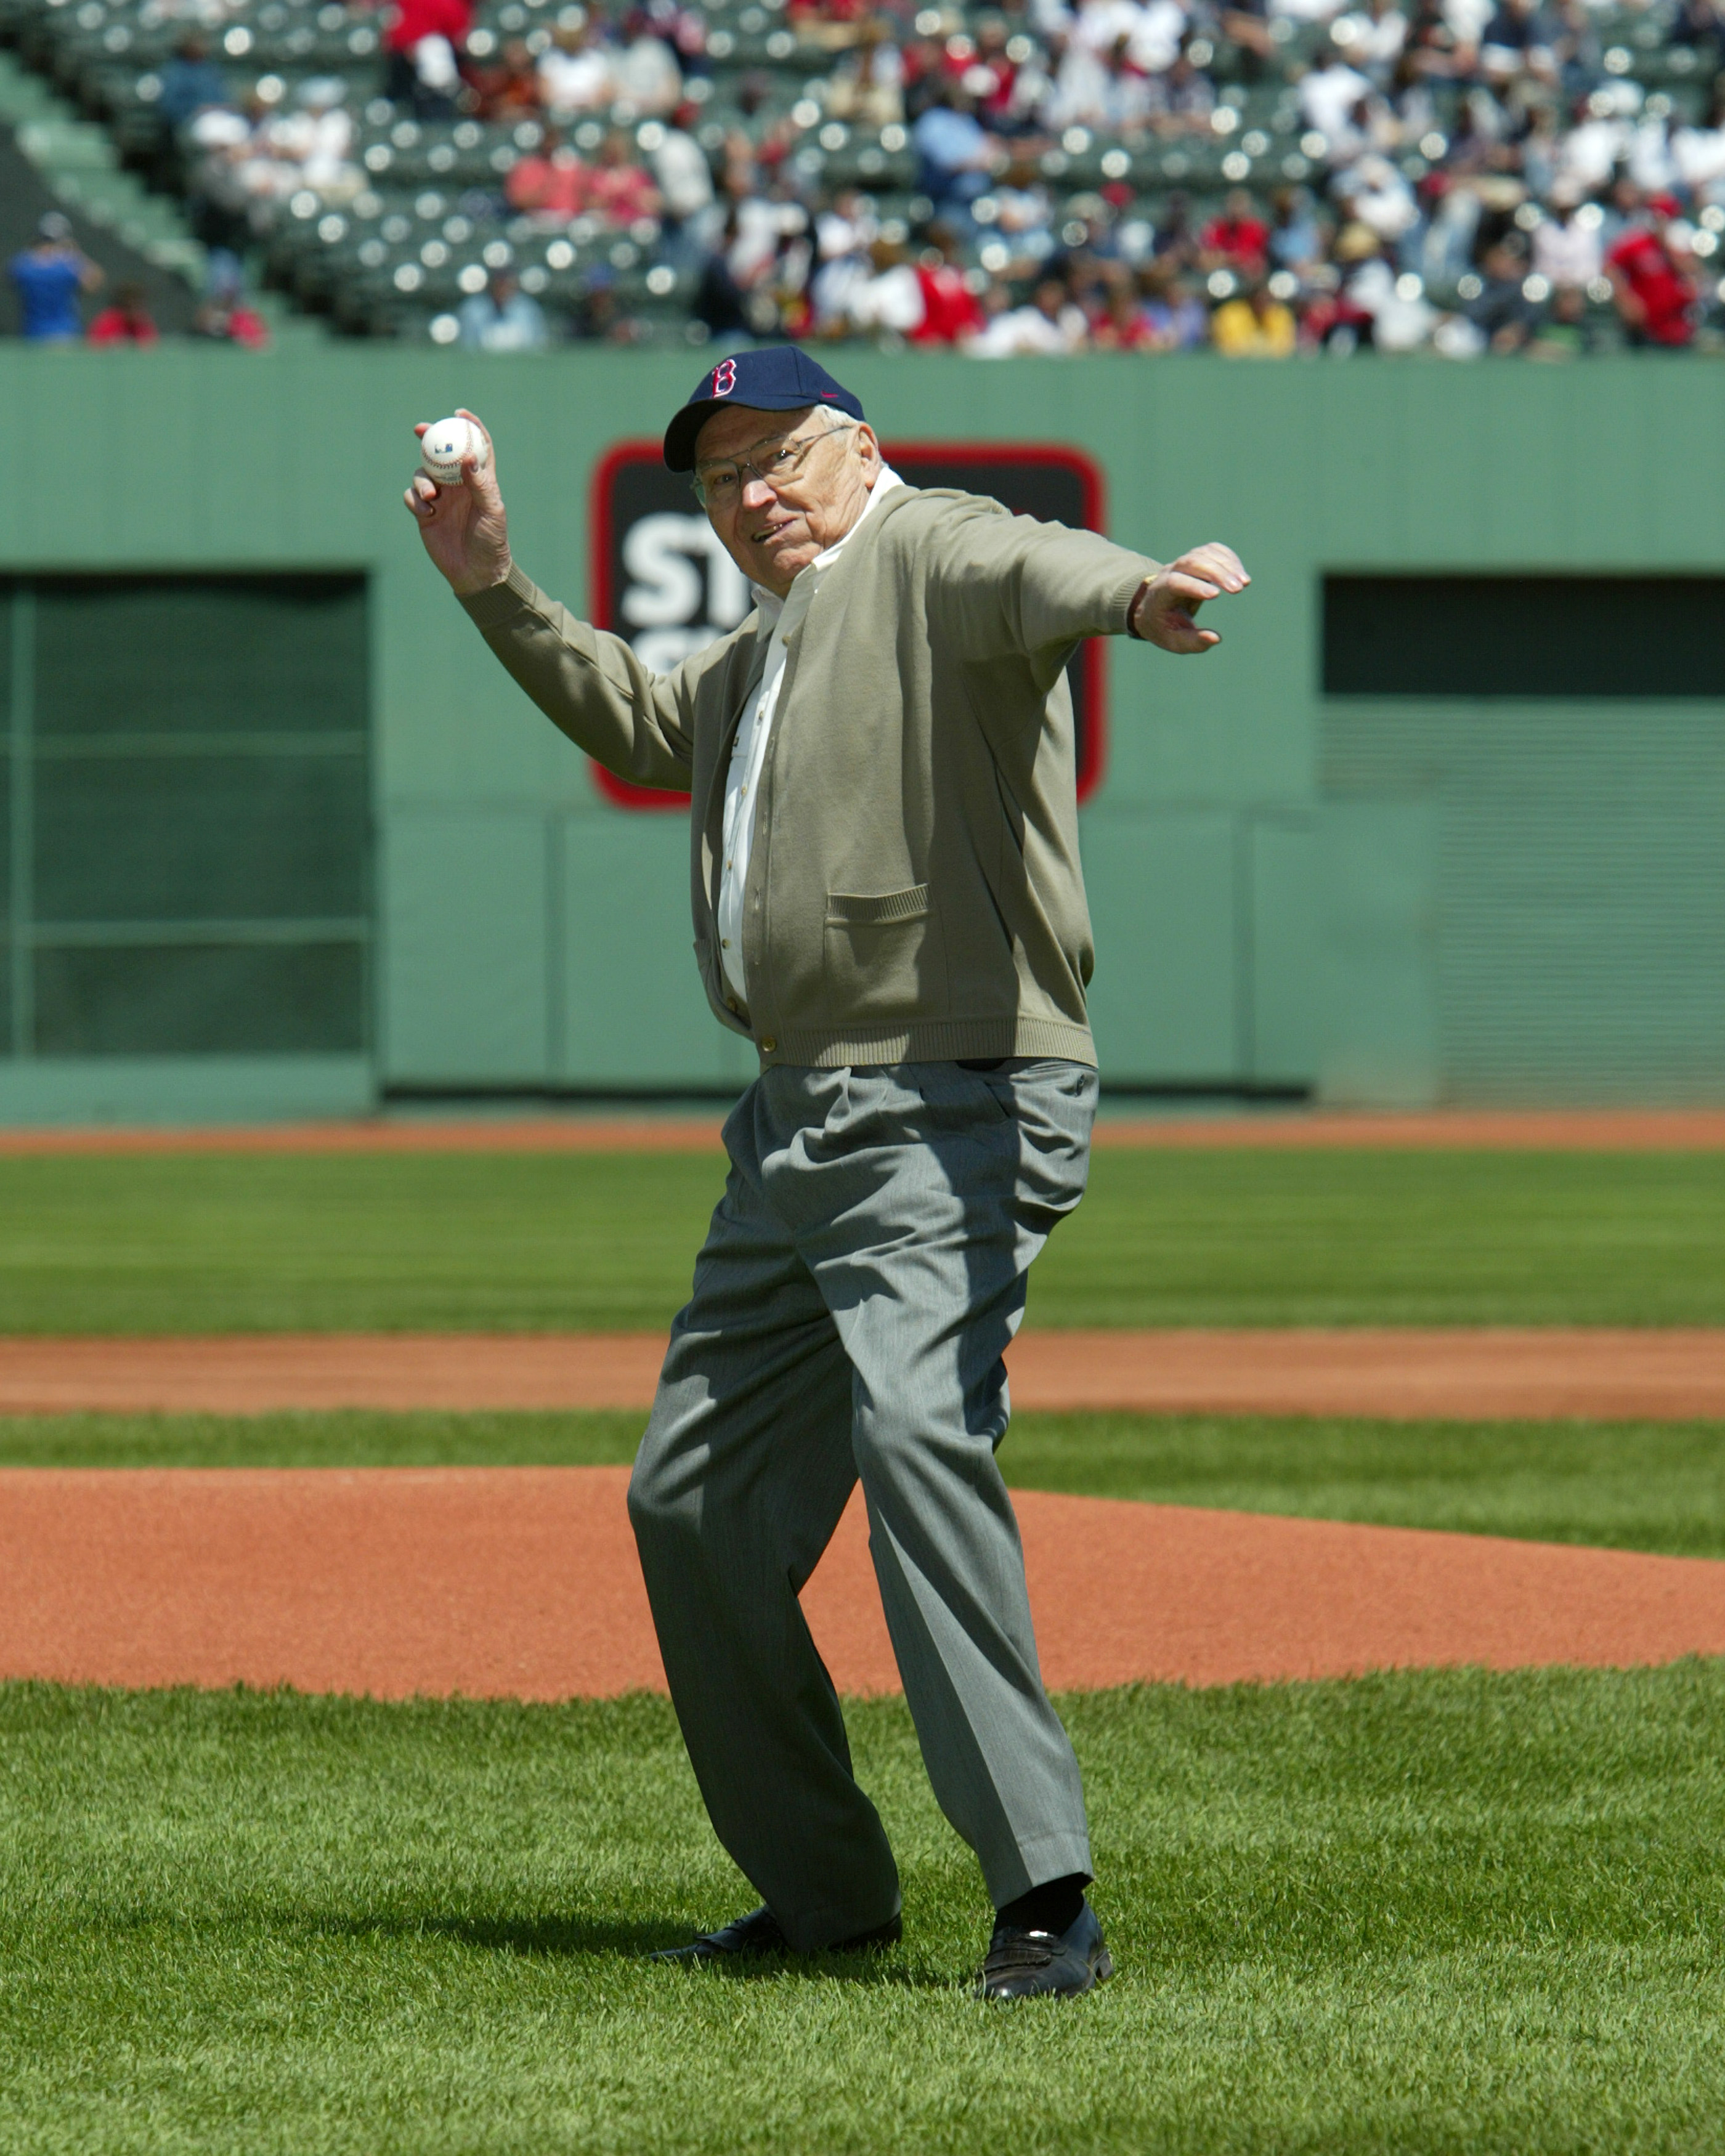 Elder L. Tom Perry winds up to throw the ceremonial first pitch prior to a Boston Red Sox baseball game on May 8, 2004.